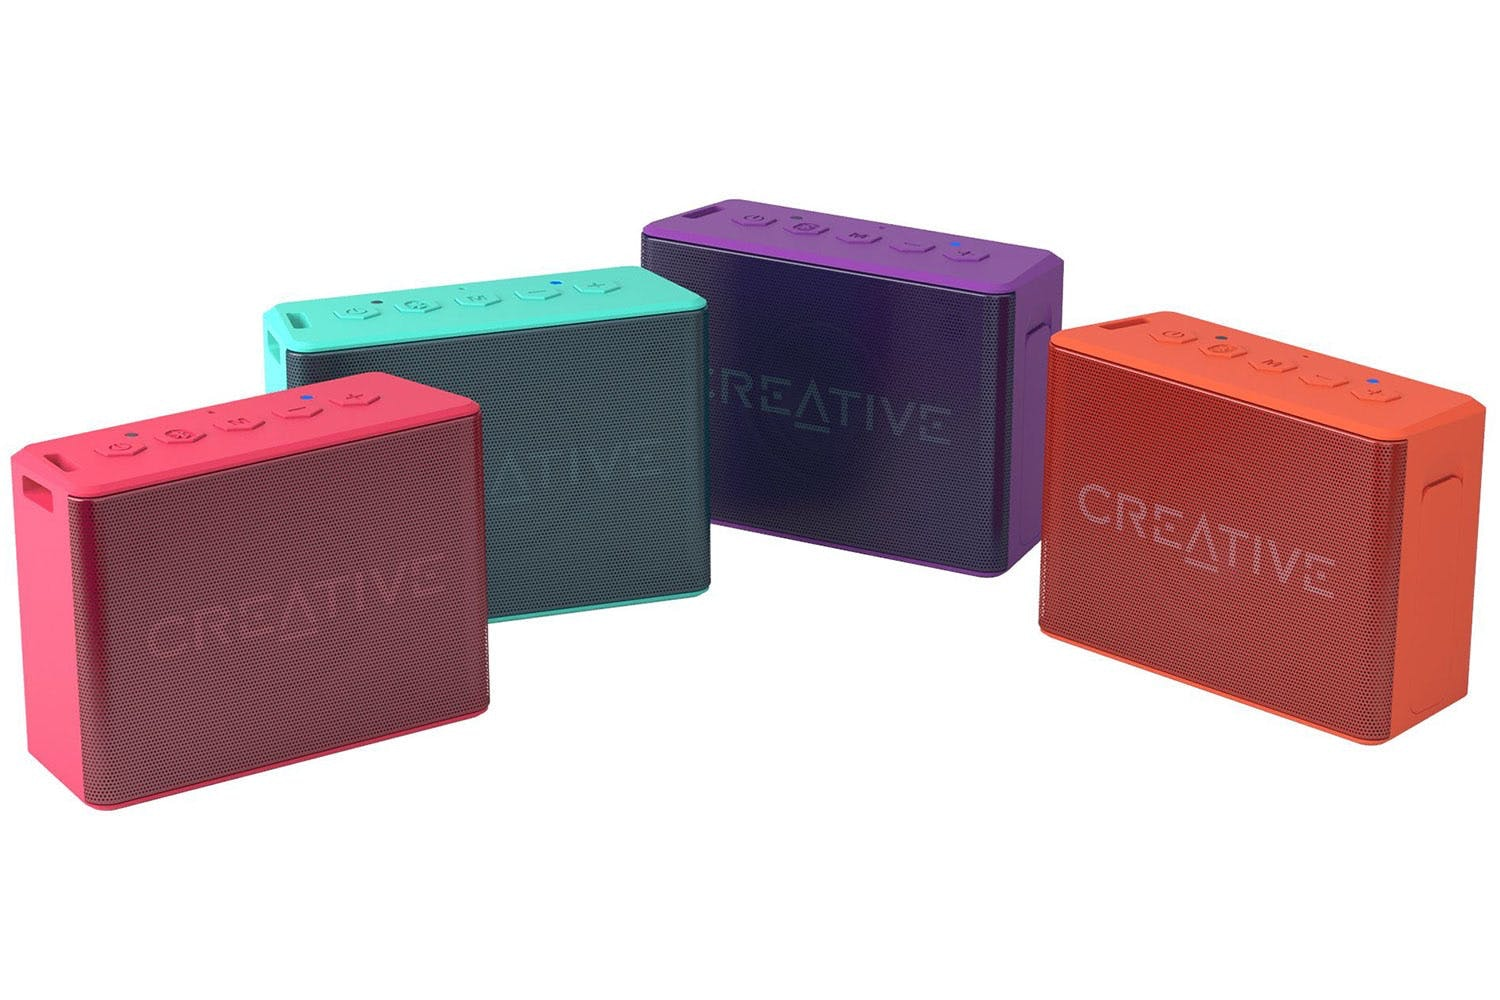 Creative MUVO 2C Bluetooth Speaker